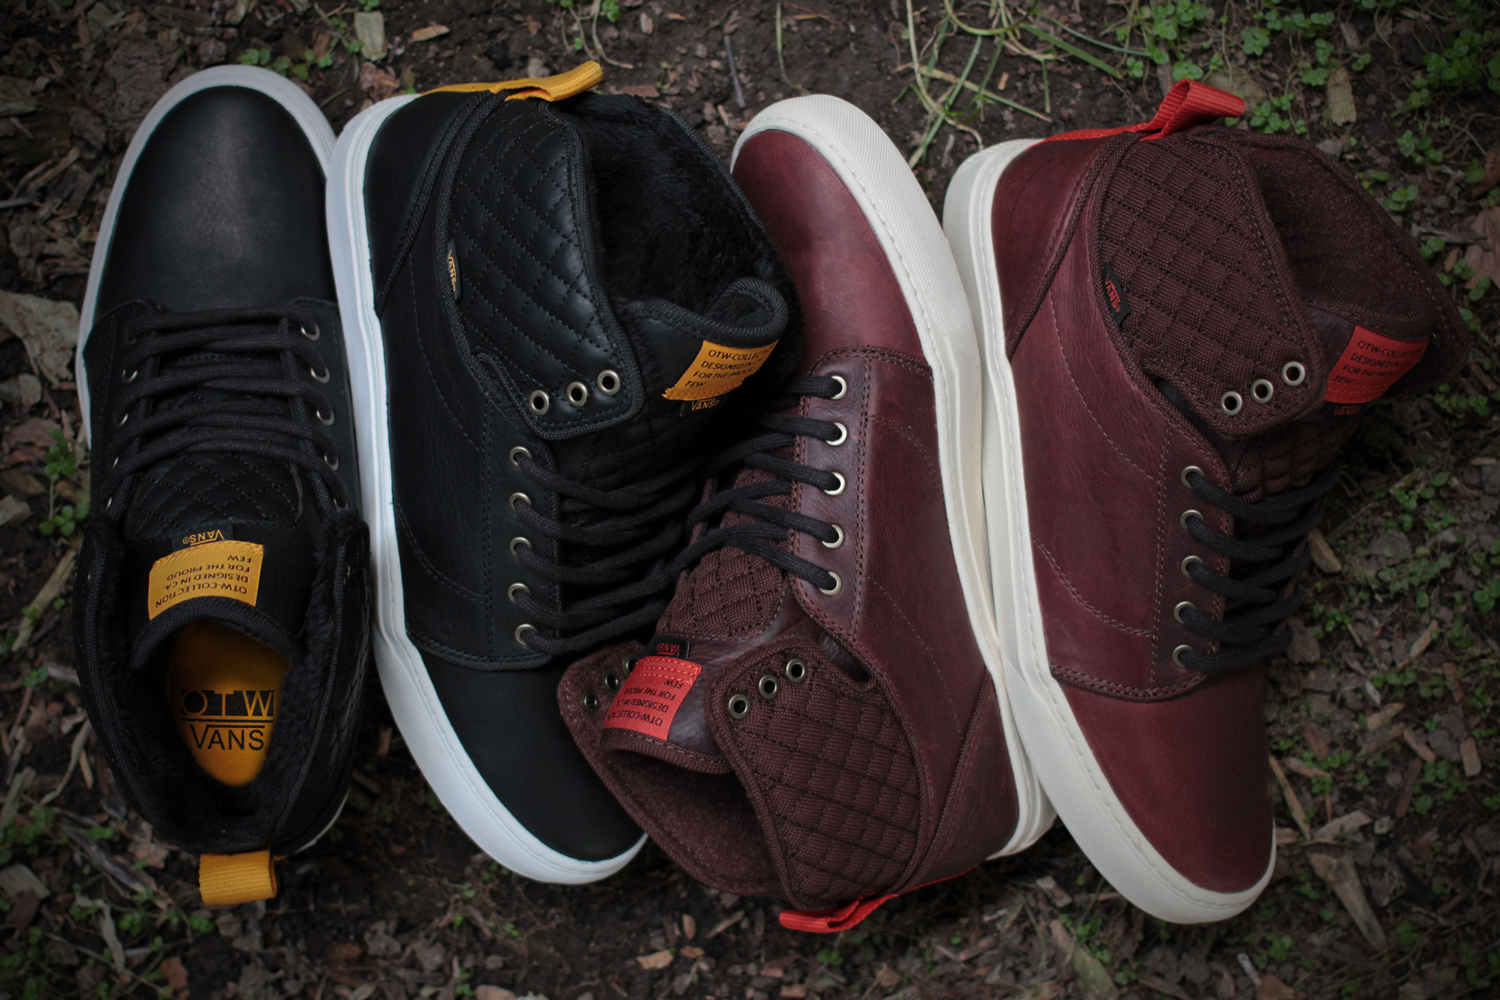 Vans-OTW-Collection_Alomar-AW_Militia-Pack_Holiday-2013